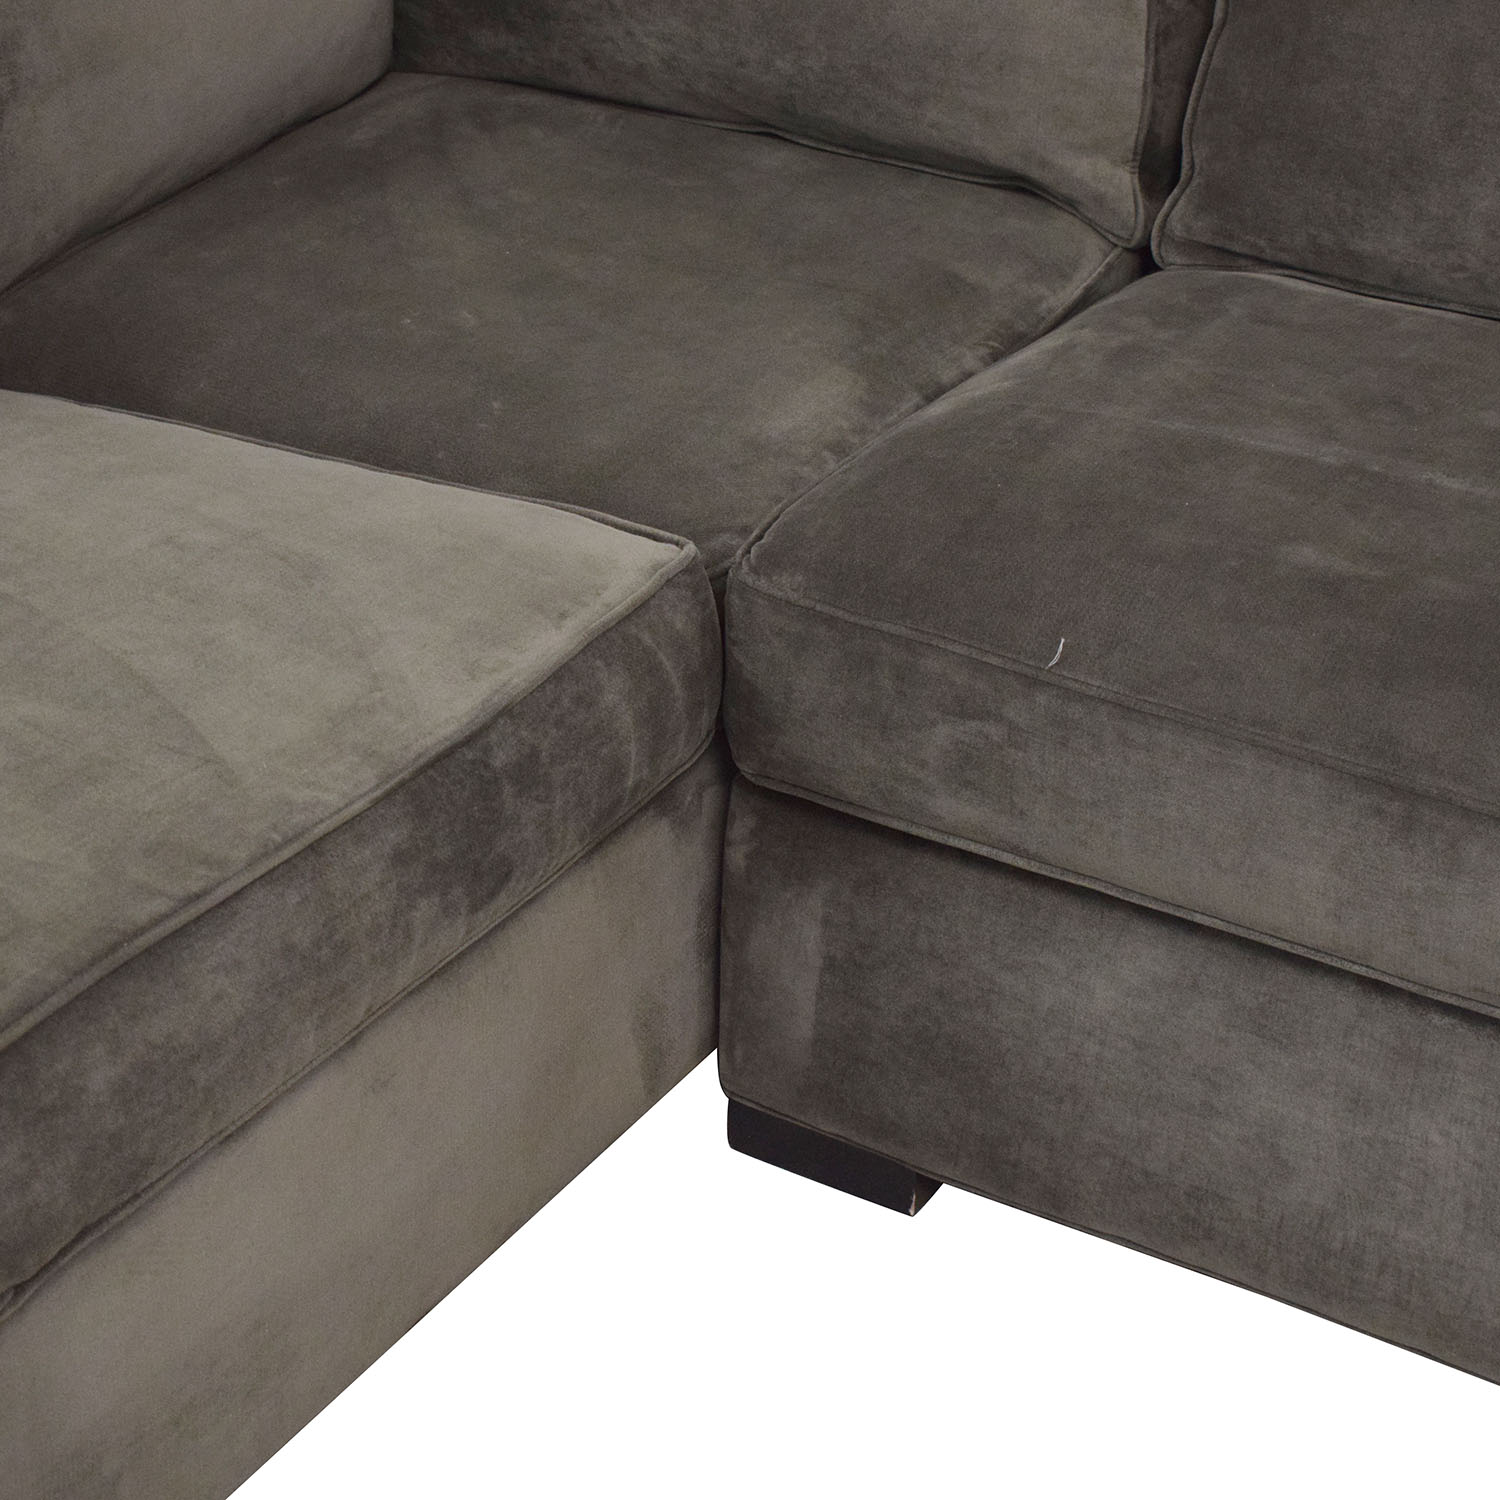 Arhaus Arhaus Dune Sectional Sofa for sale